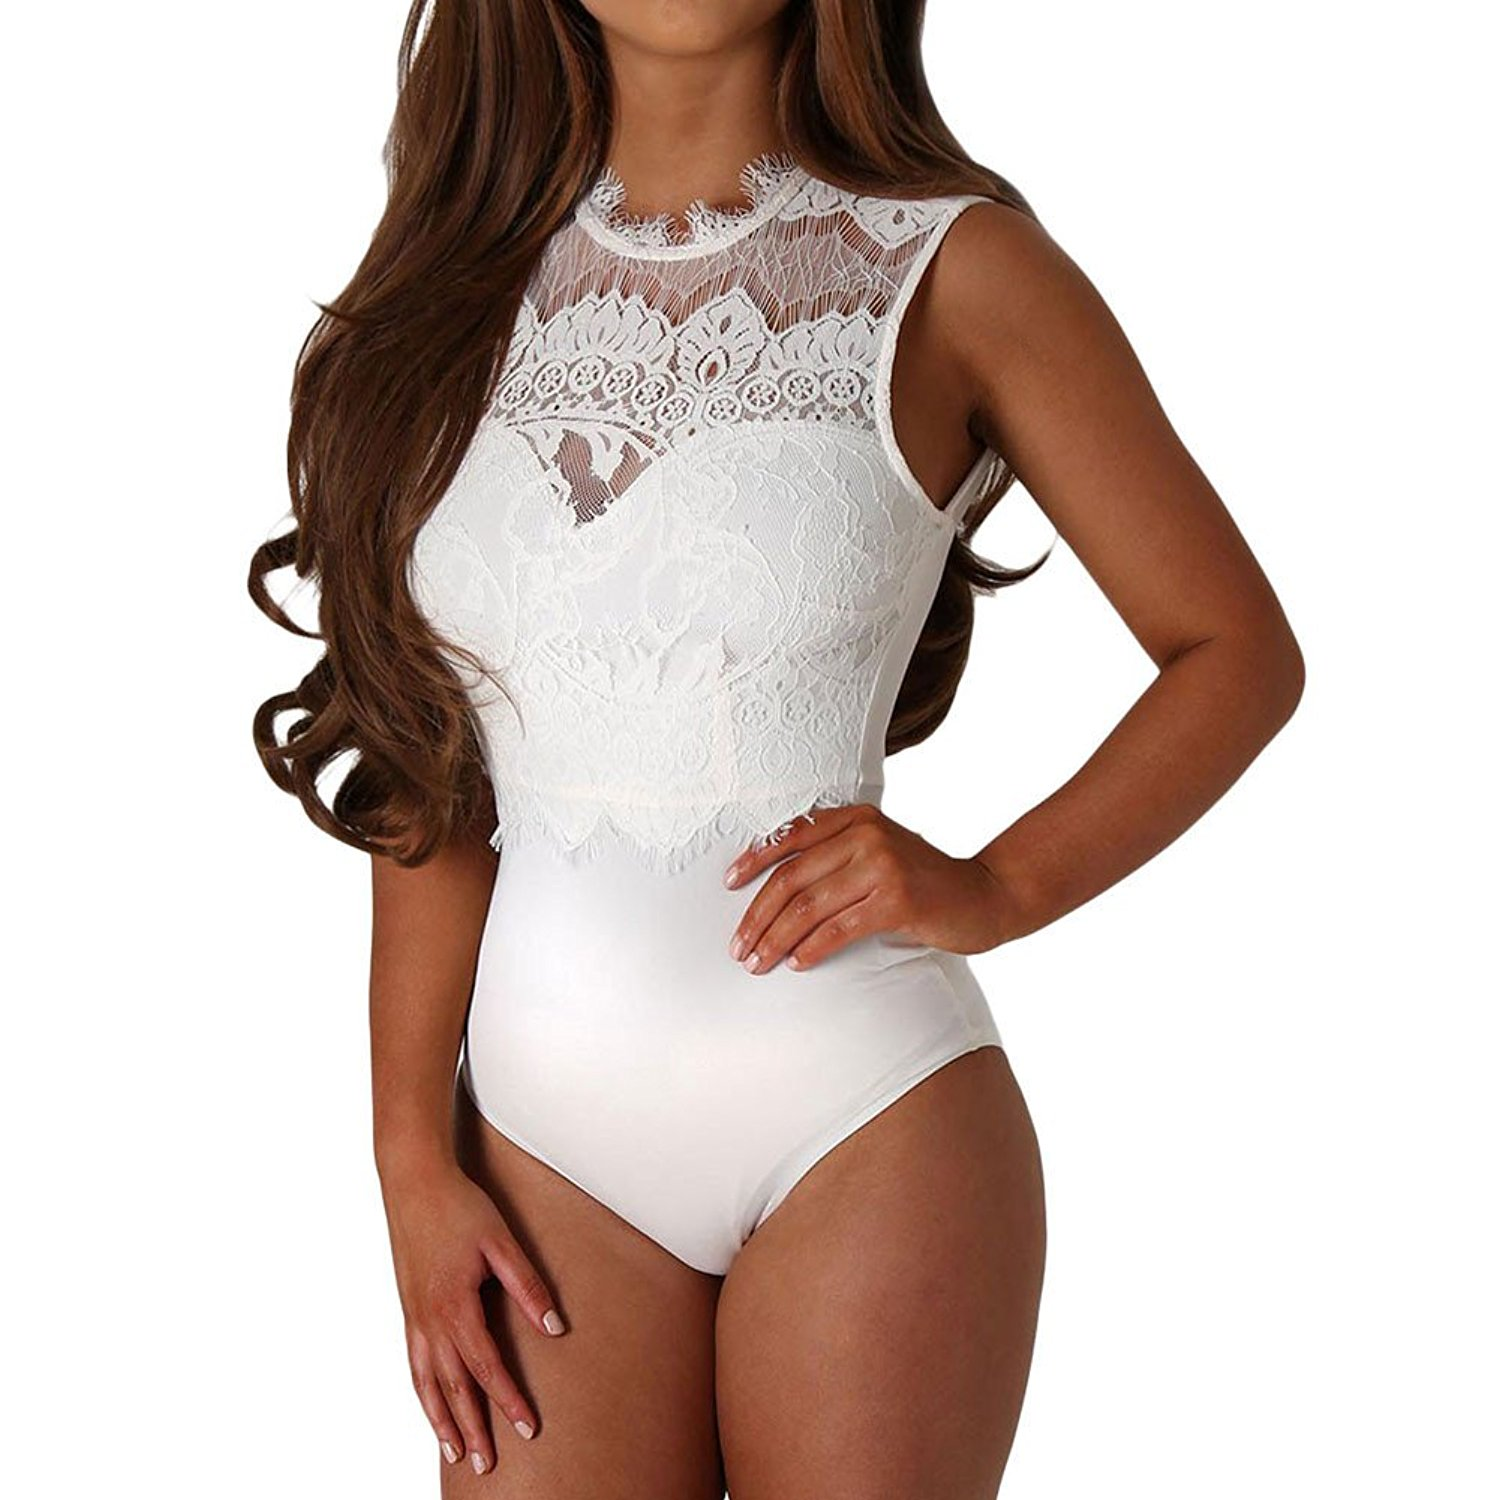 2204a43503a1 Get Quotations · SUBWELL Women s Hollow Out Lace Backless Bodycon Shapewear  Thong Bodysuit Jumpsuit Sexy Tops